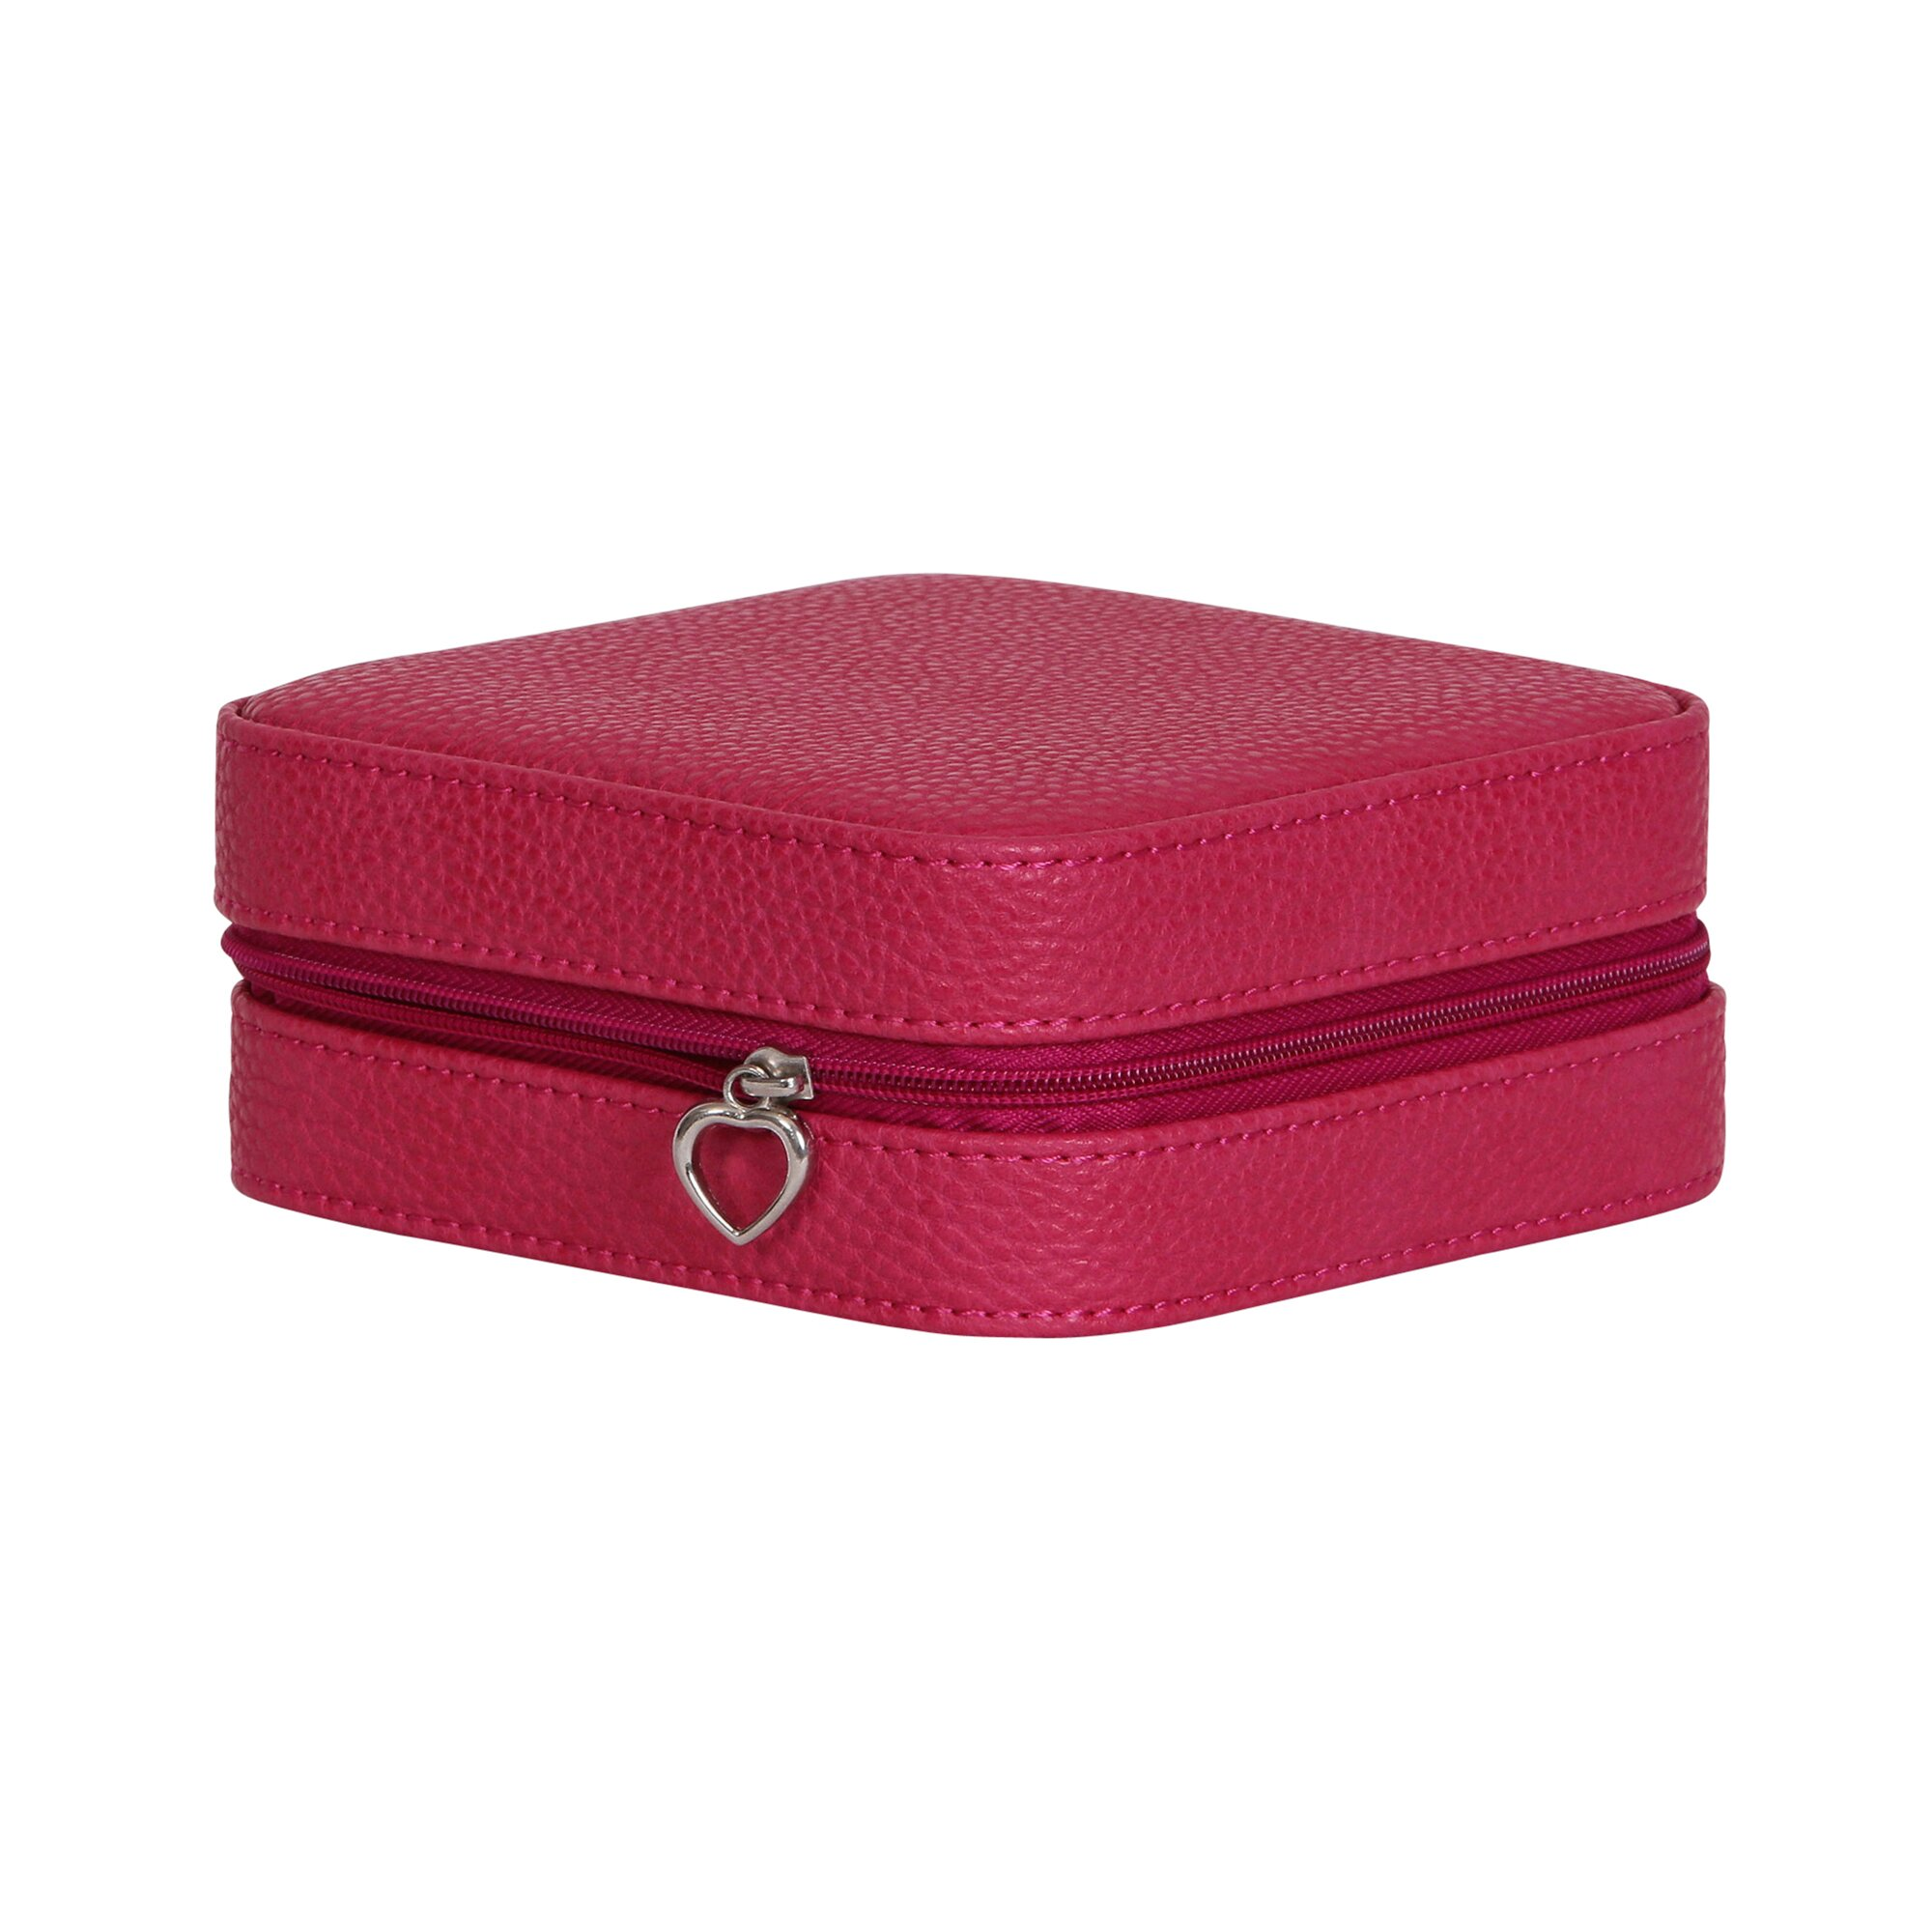 Mele Amp Co Josette Travel Faux Leather Jewelry Case